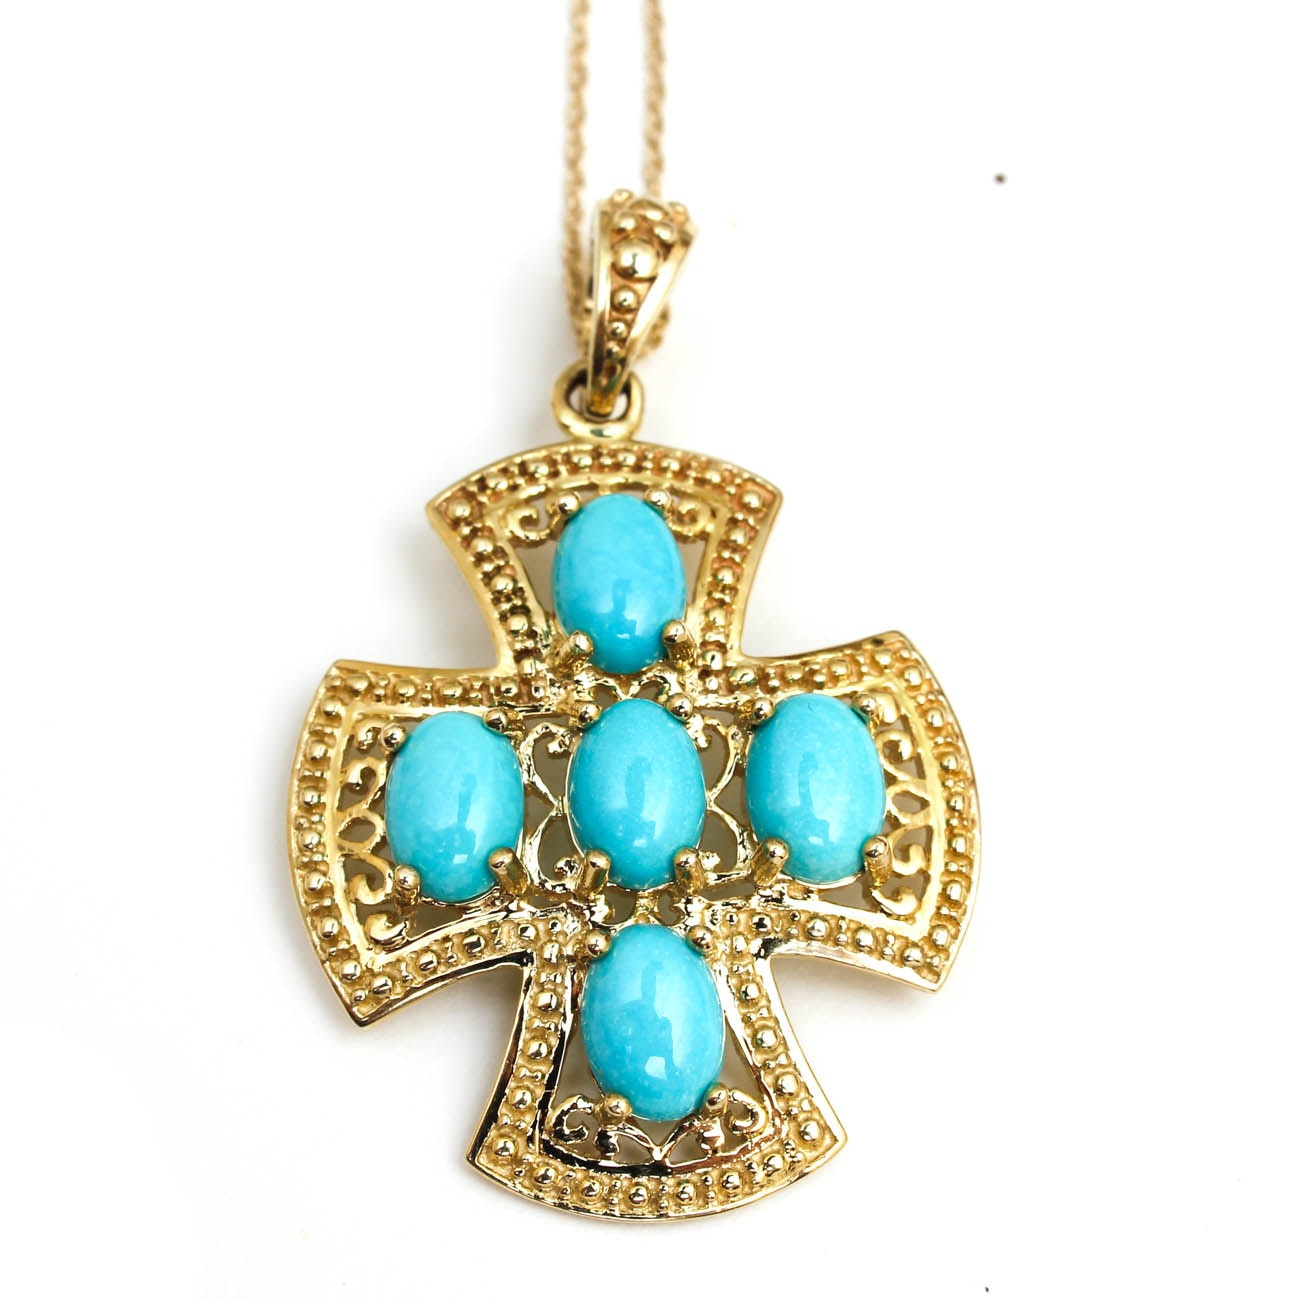 14K Yellow Gold and Turquoise Cross Pendant Necklace